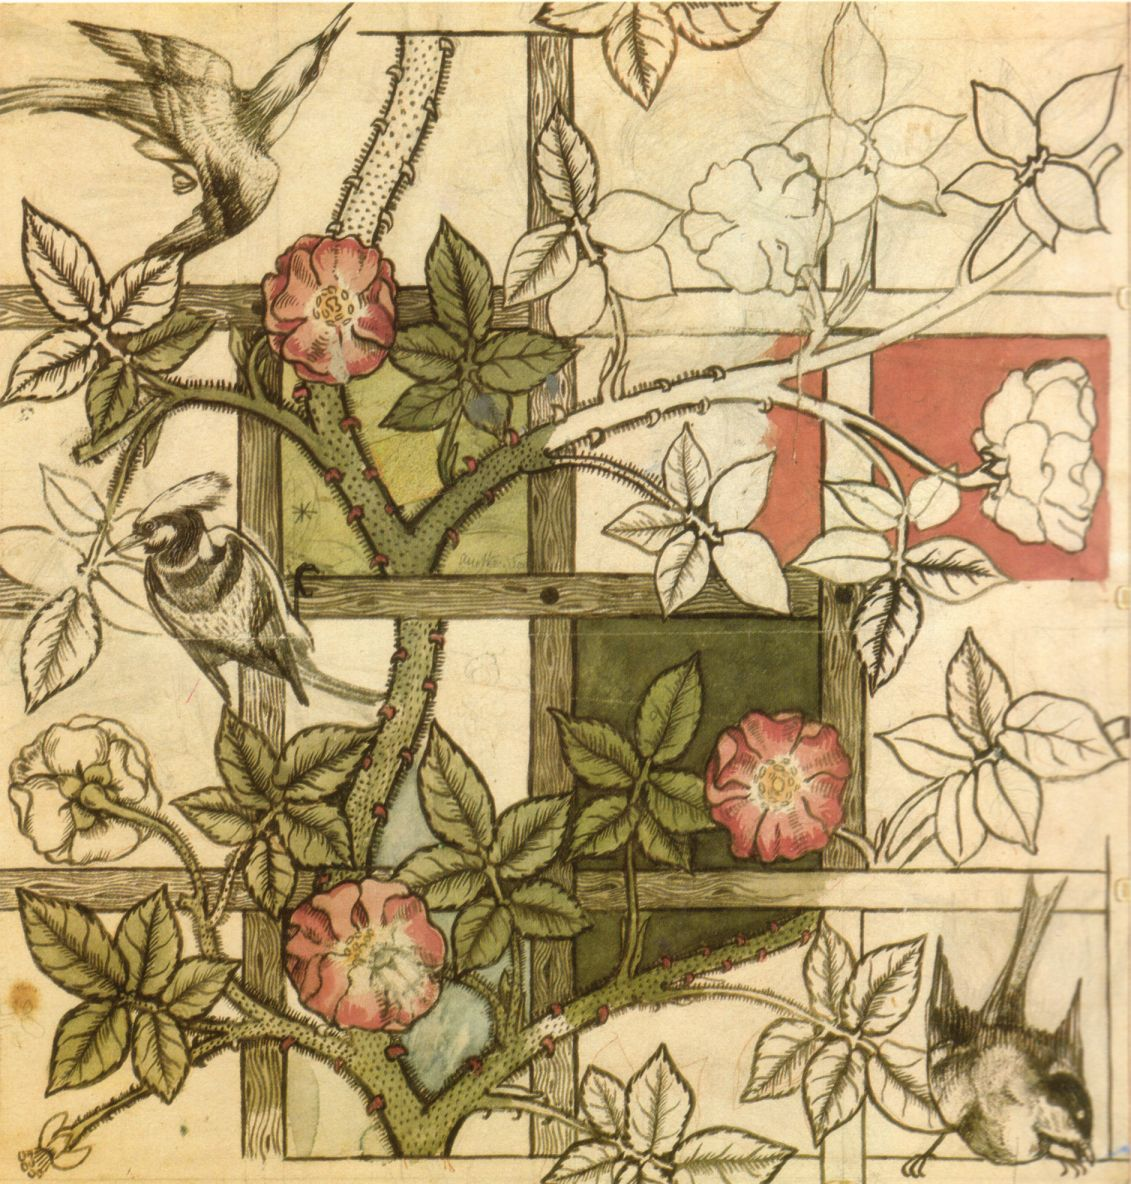 Arts and crafts prints - Find This Pin And More On Botanical Prints Drawings Arts Crafts